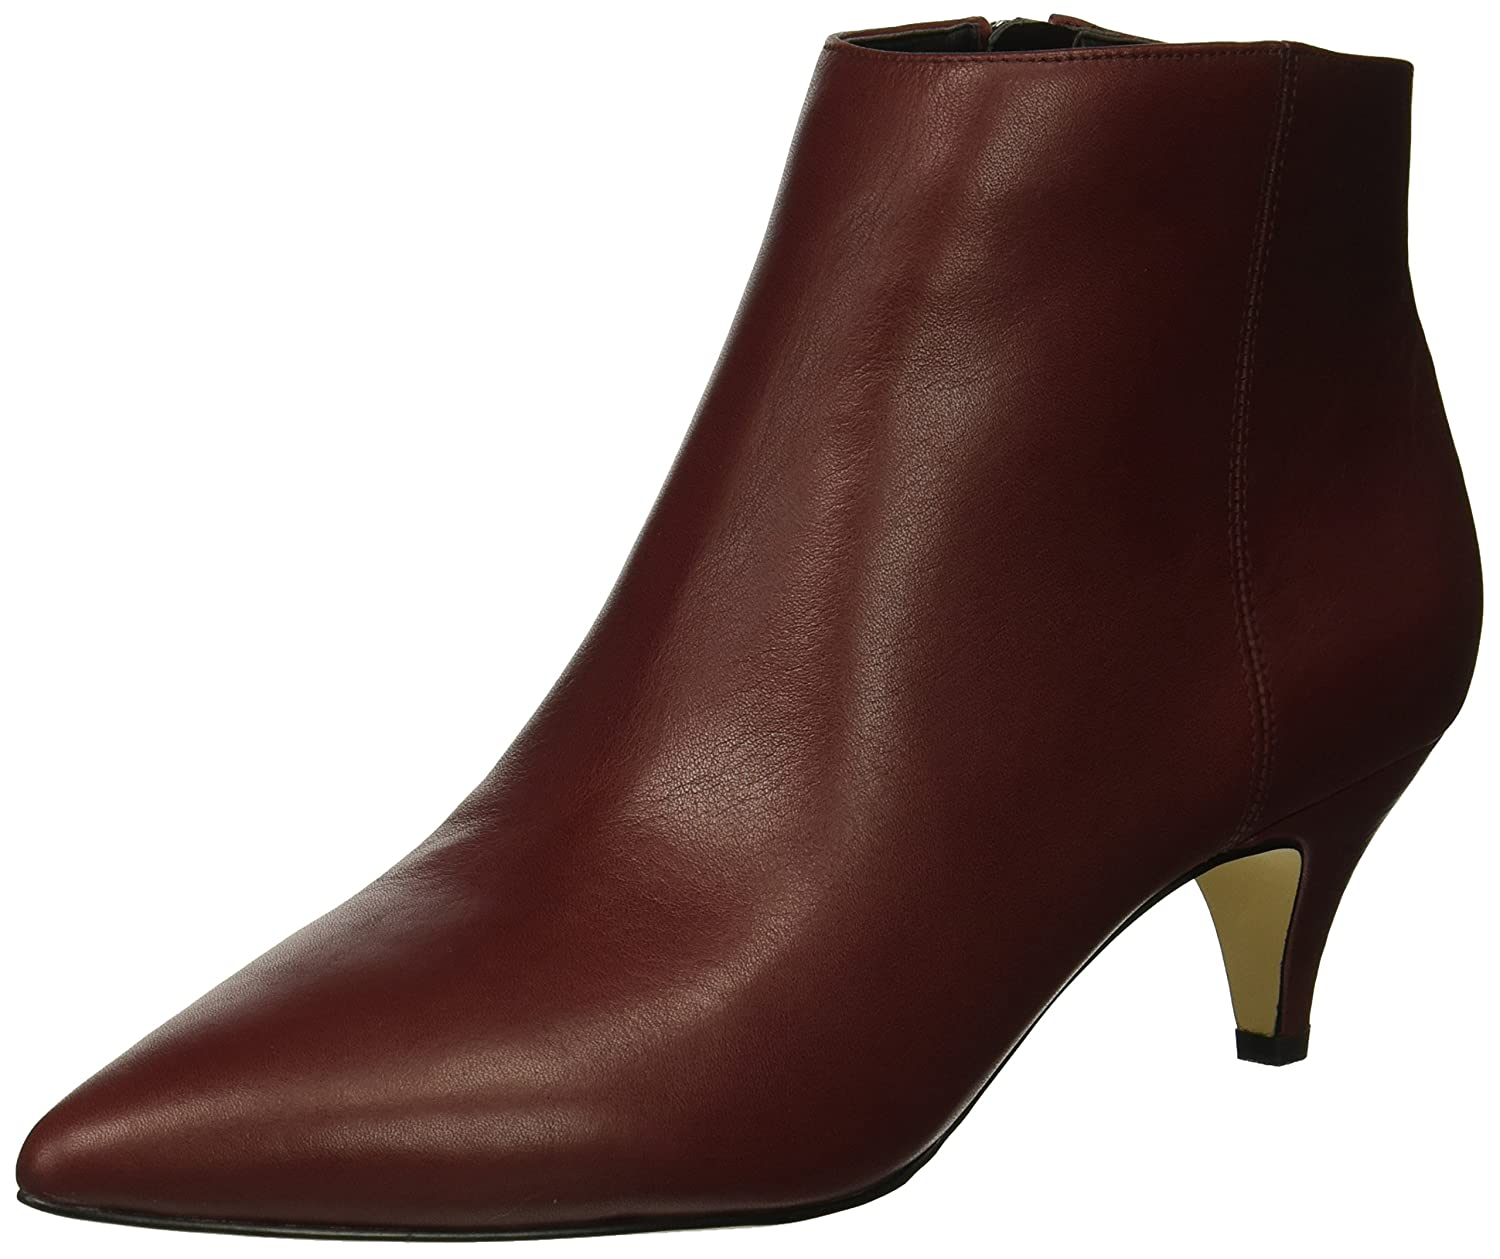 Sam Edelman Women's Kinzey Fashion Boot B07C9H1YMC 10 B(M) US|Beet Red Leather